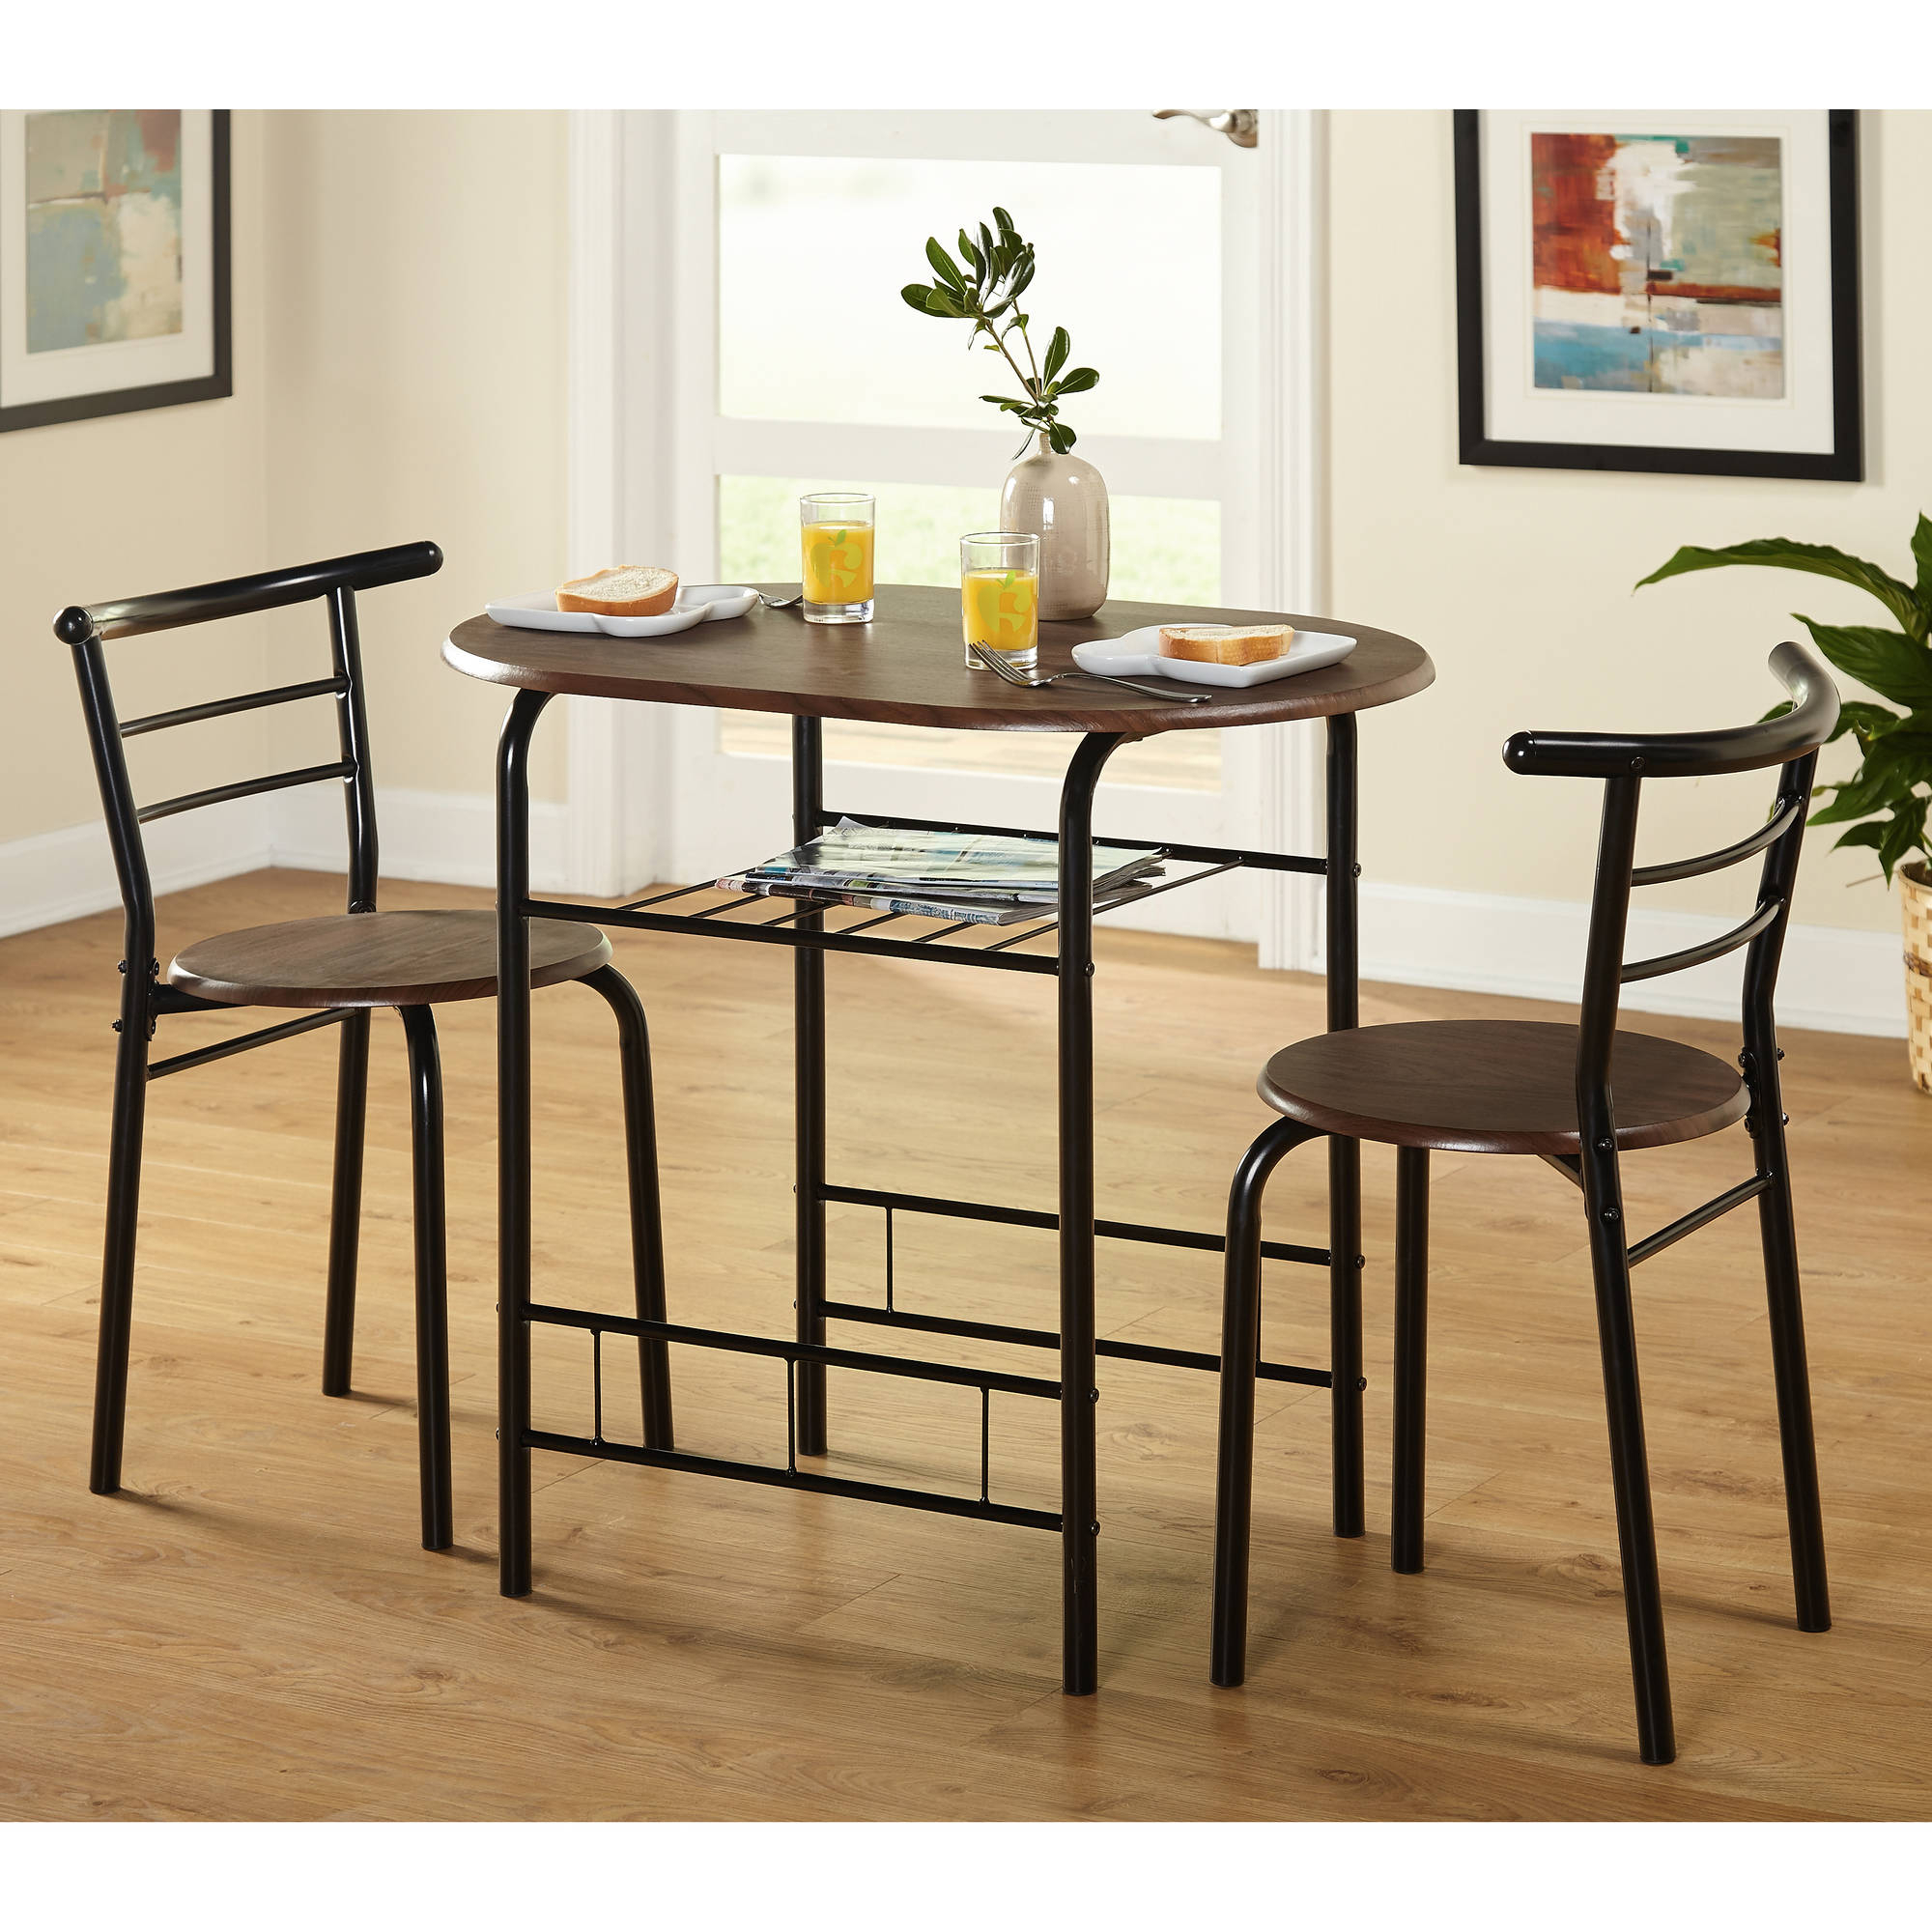 Favorite 3 Piece Dining Sets Intended For Tms 3 Piece Bistro Dining Set (View 8 of 20)